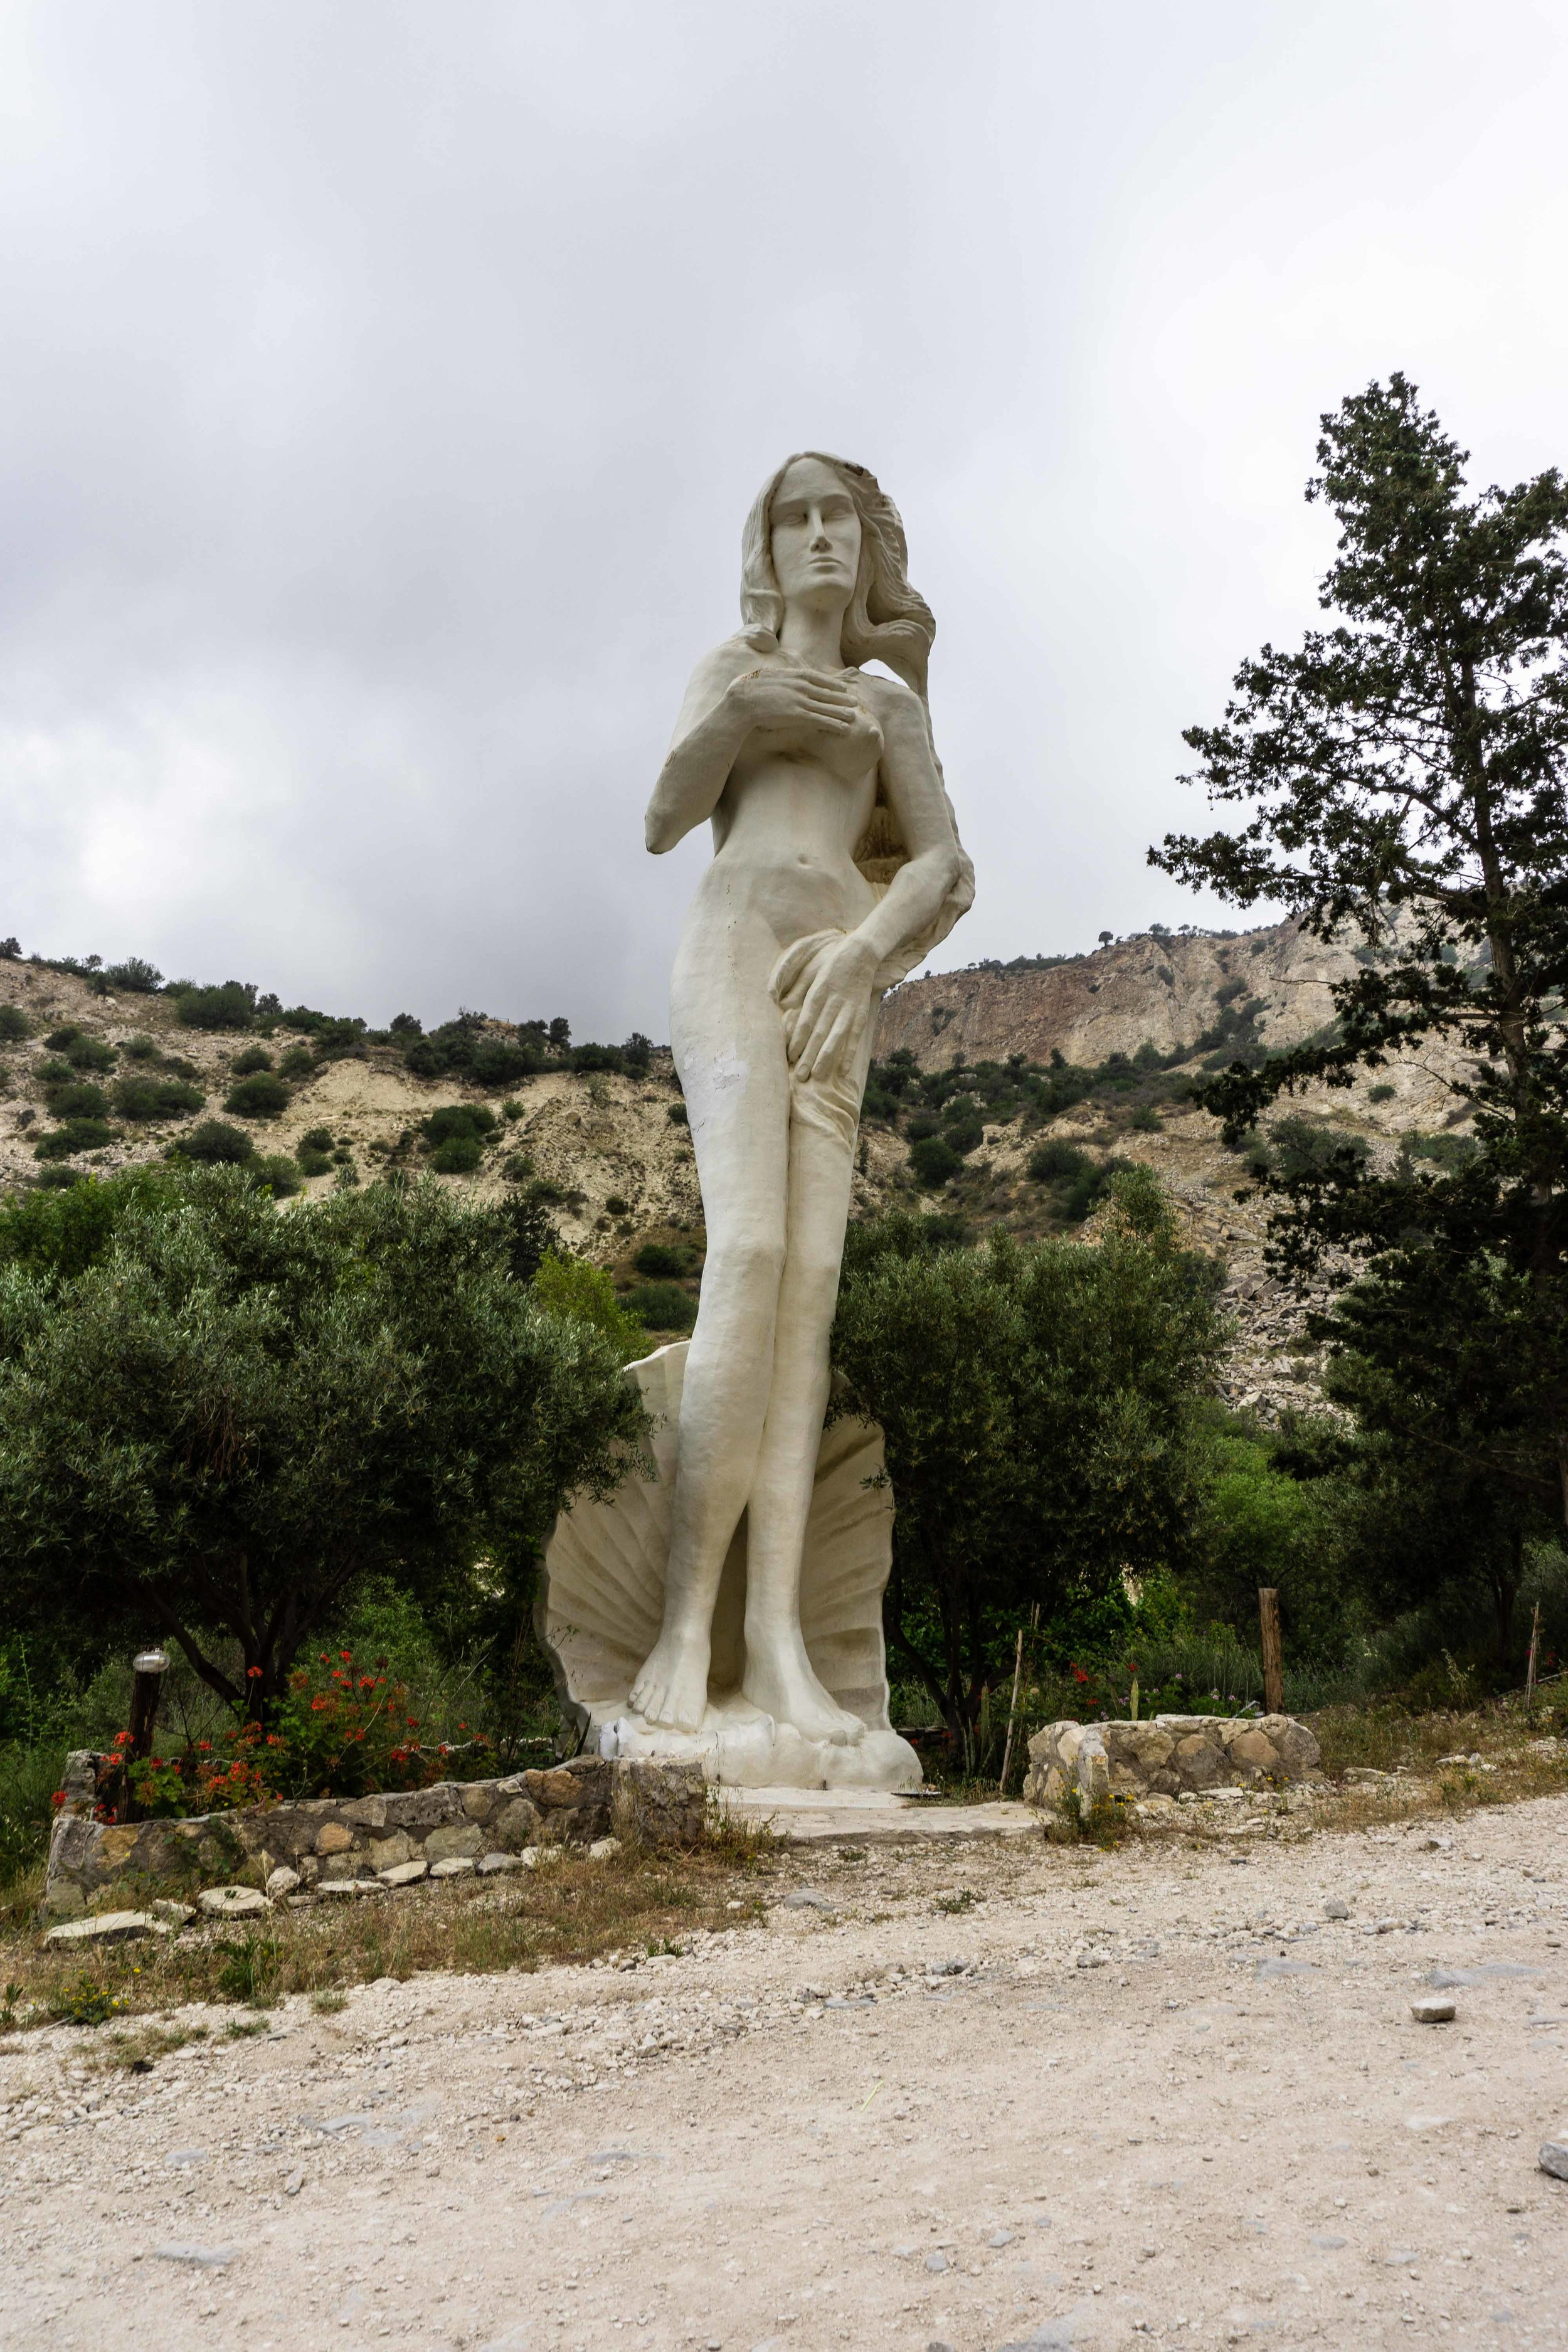 Very terrible statue of Aphrodite